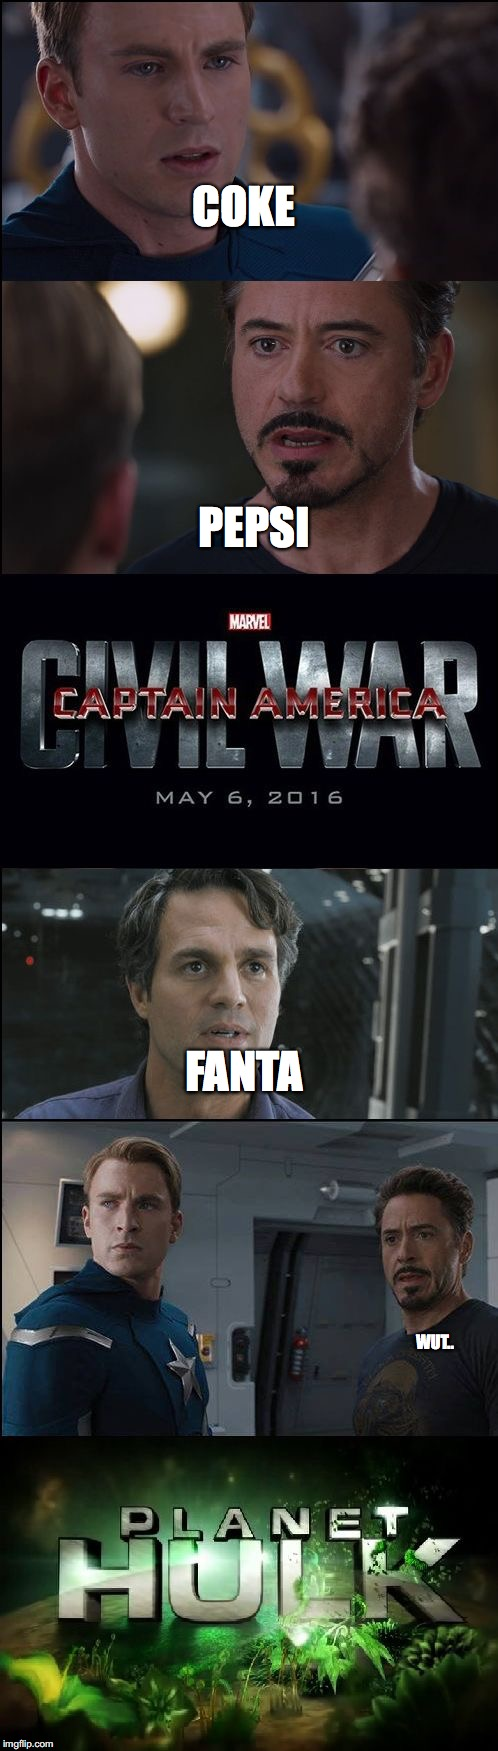 Civil War/Planet Hulk |  PEPSI; COKE; FANTA; WUT.. | image tagged in memes,funny,civil war/planet hulk,coke,pepsi,fanta | made w/ Imgflip meme maker